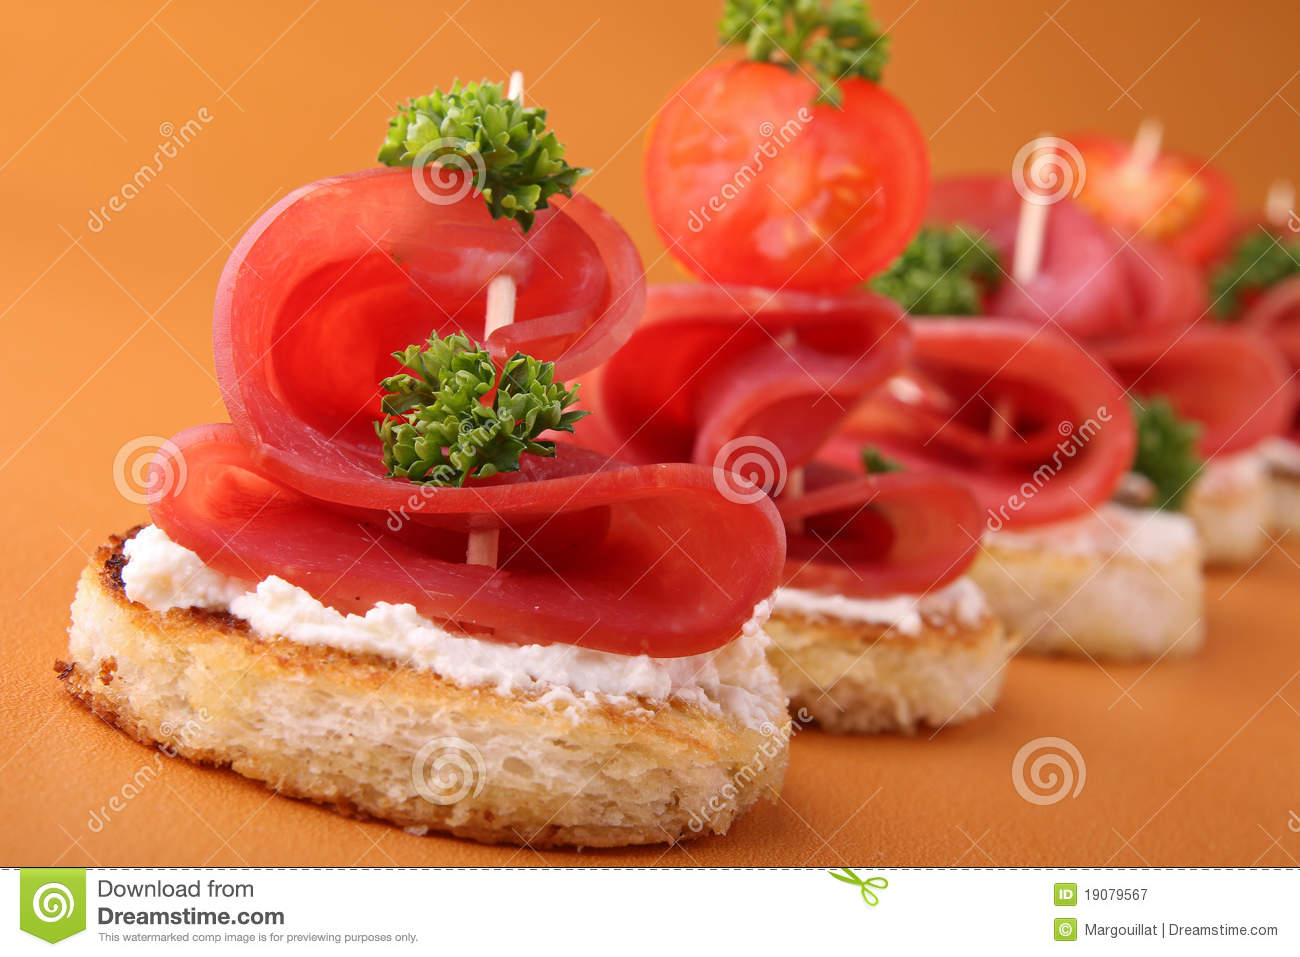 Appetizer canapes royalty free stock photography image for What is a canape appetizer